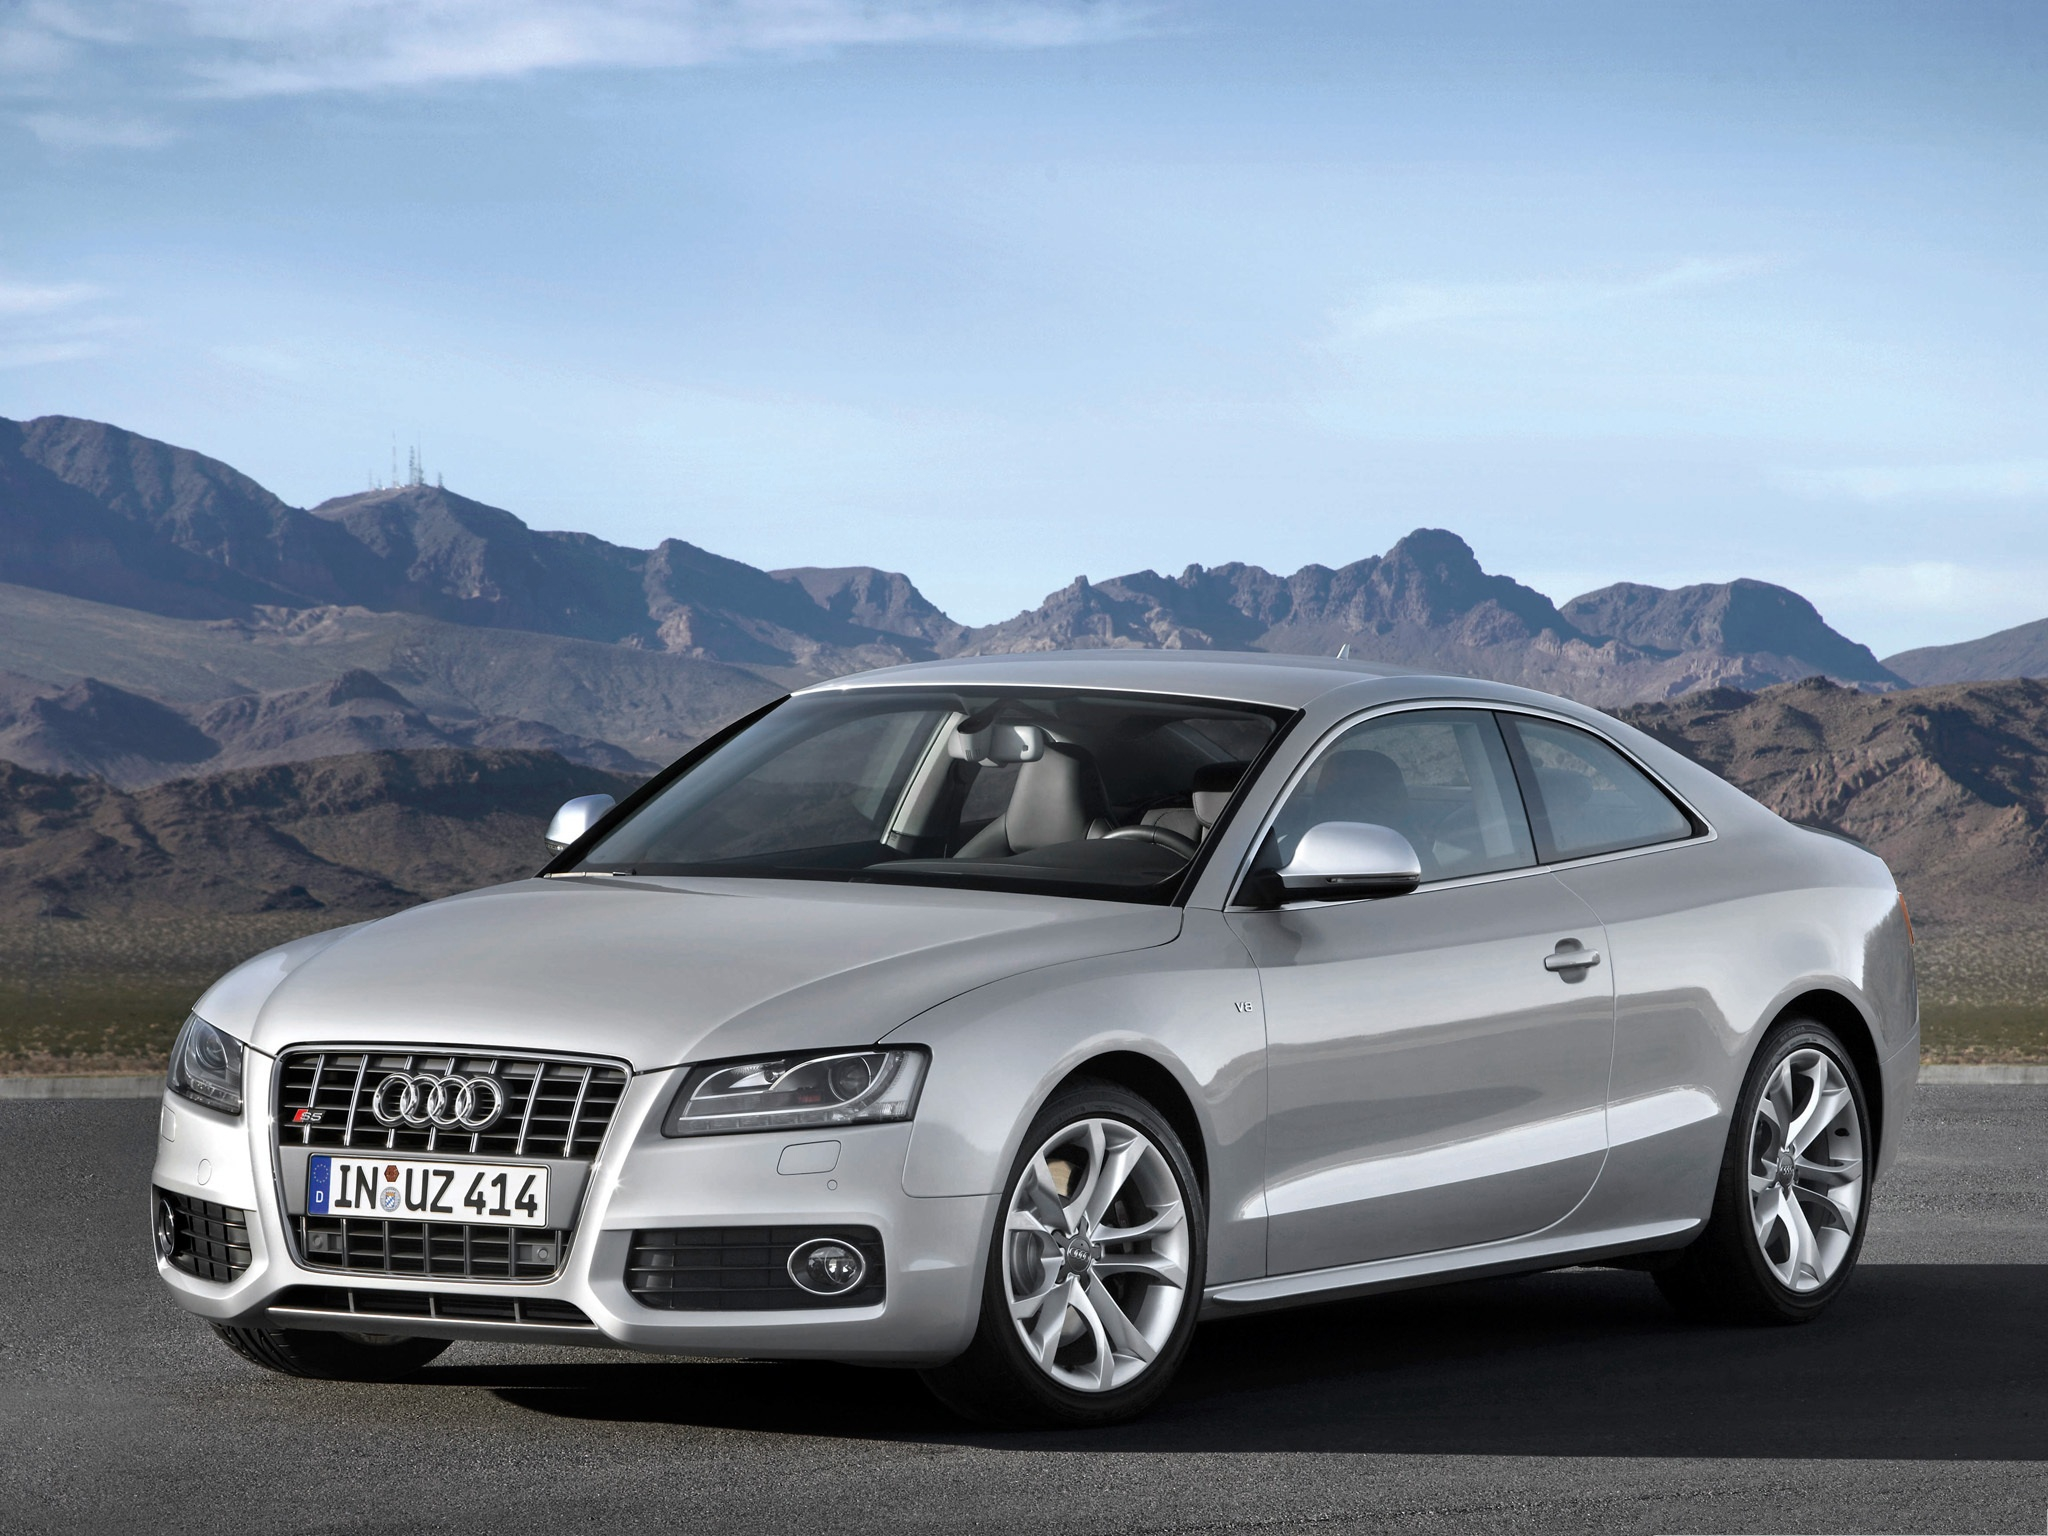 Audi S5 Coupe Car Silver Super Car Among Tall Hills What